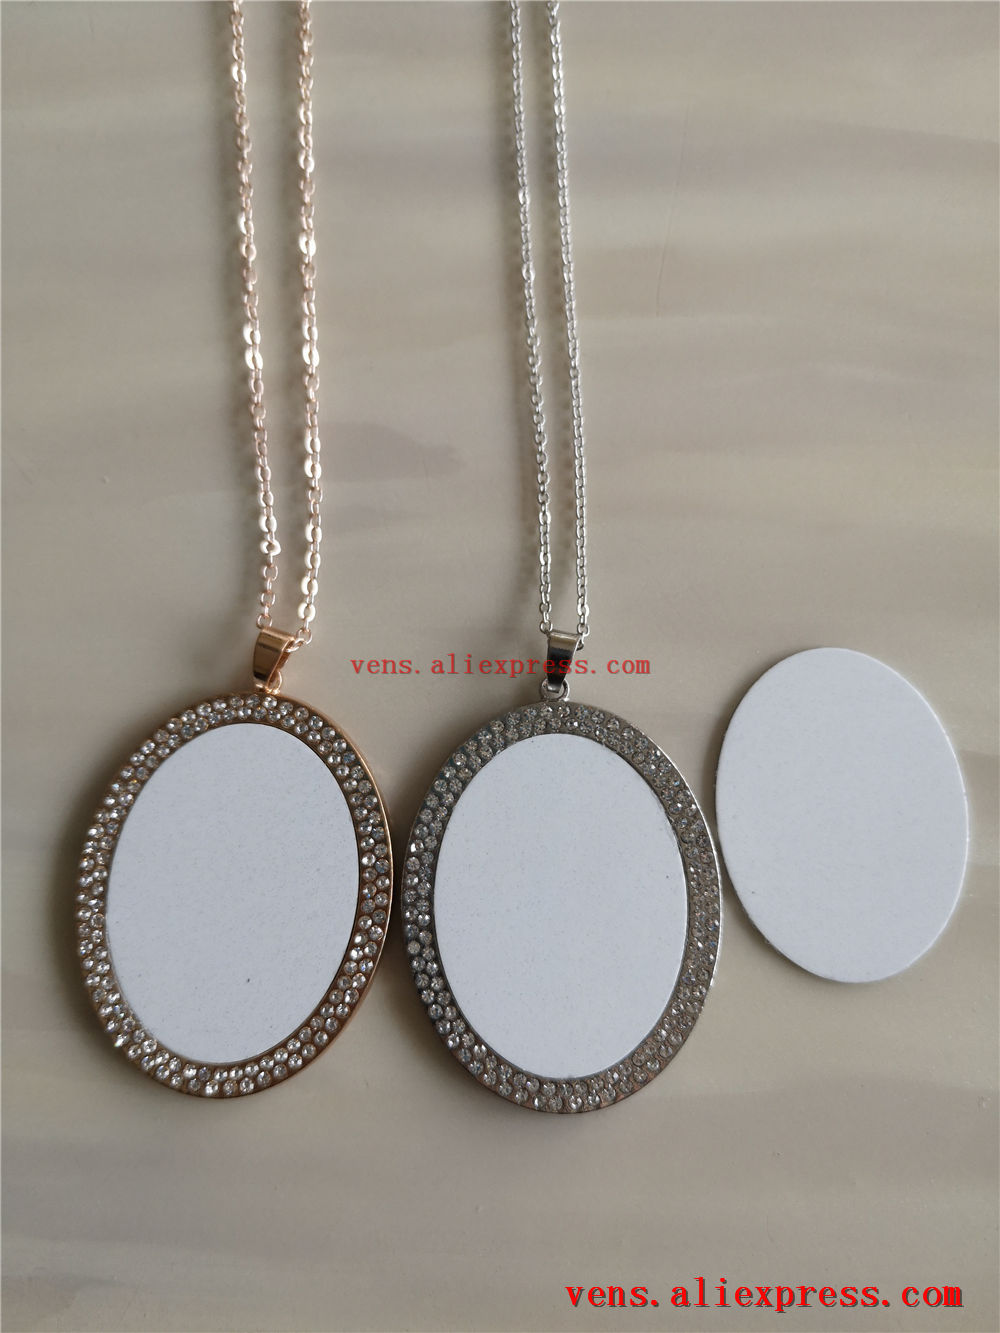 Image 5 - sublimation blank necklaces pendants with drill fashion ellipse oval shaped women necklace pendant jewelry 15pcs/lot-in Pendants from Jewelry & Accessories